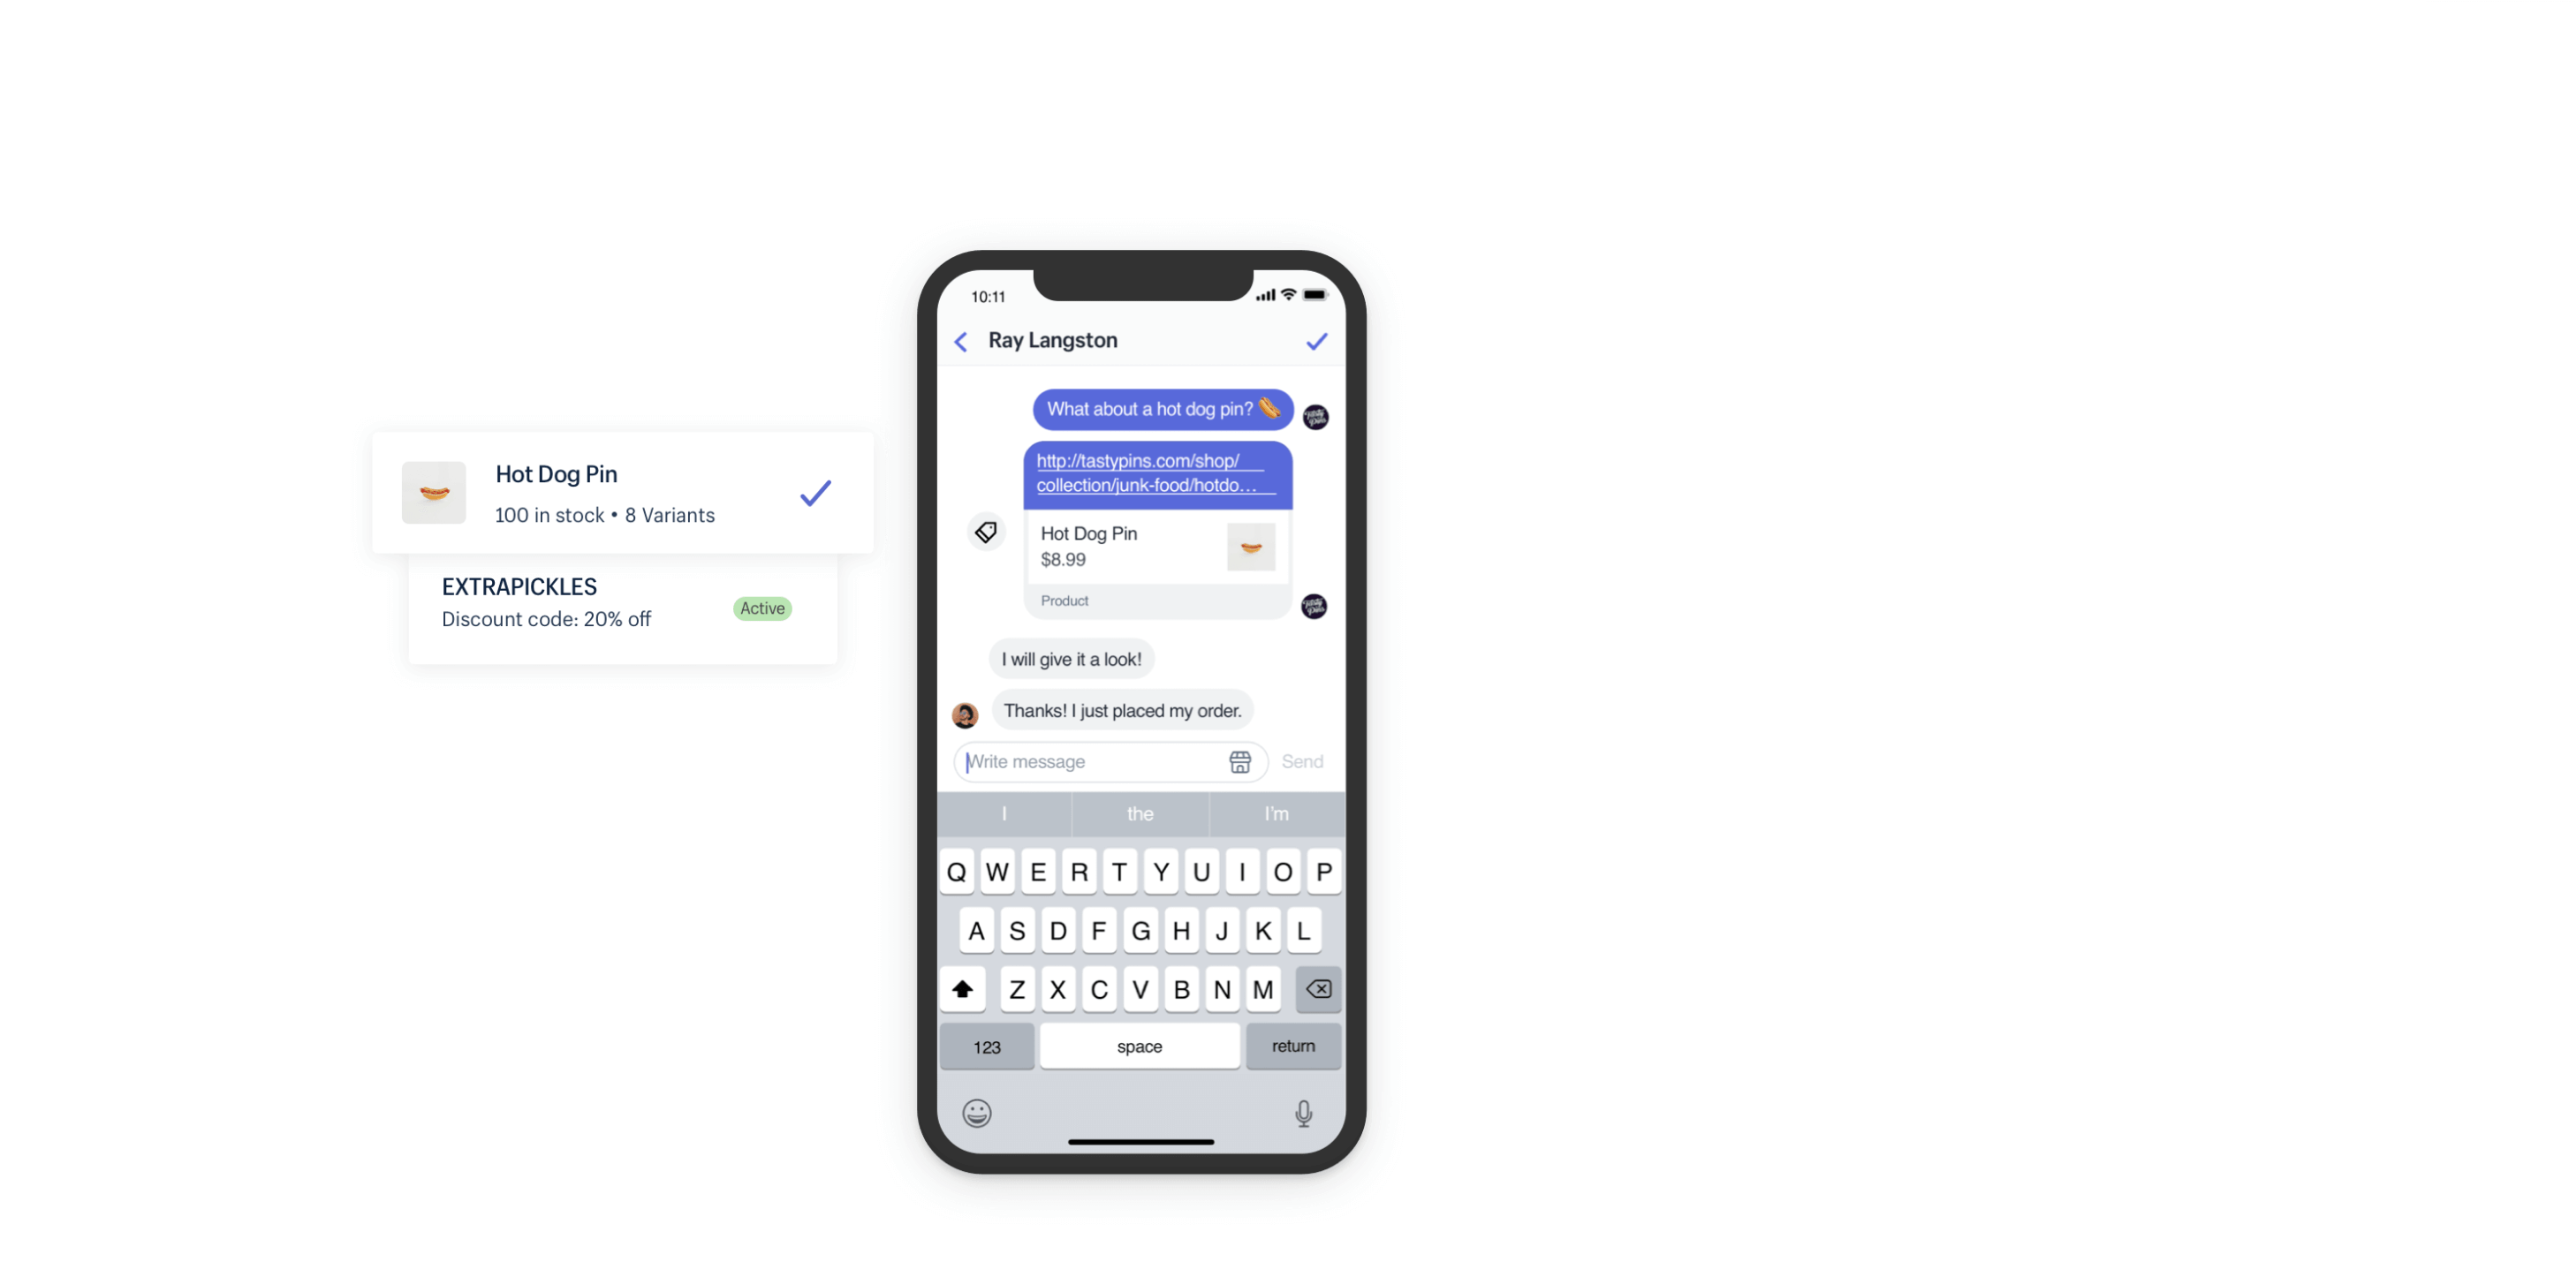 La nuova integrazione Apple Business chat per Shopify con Ping